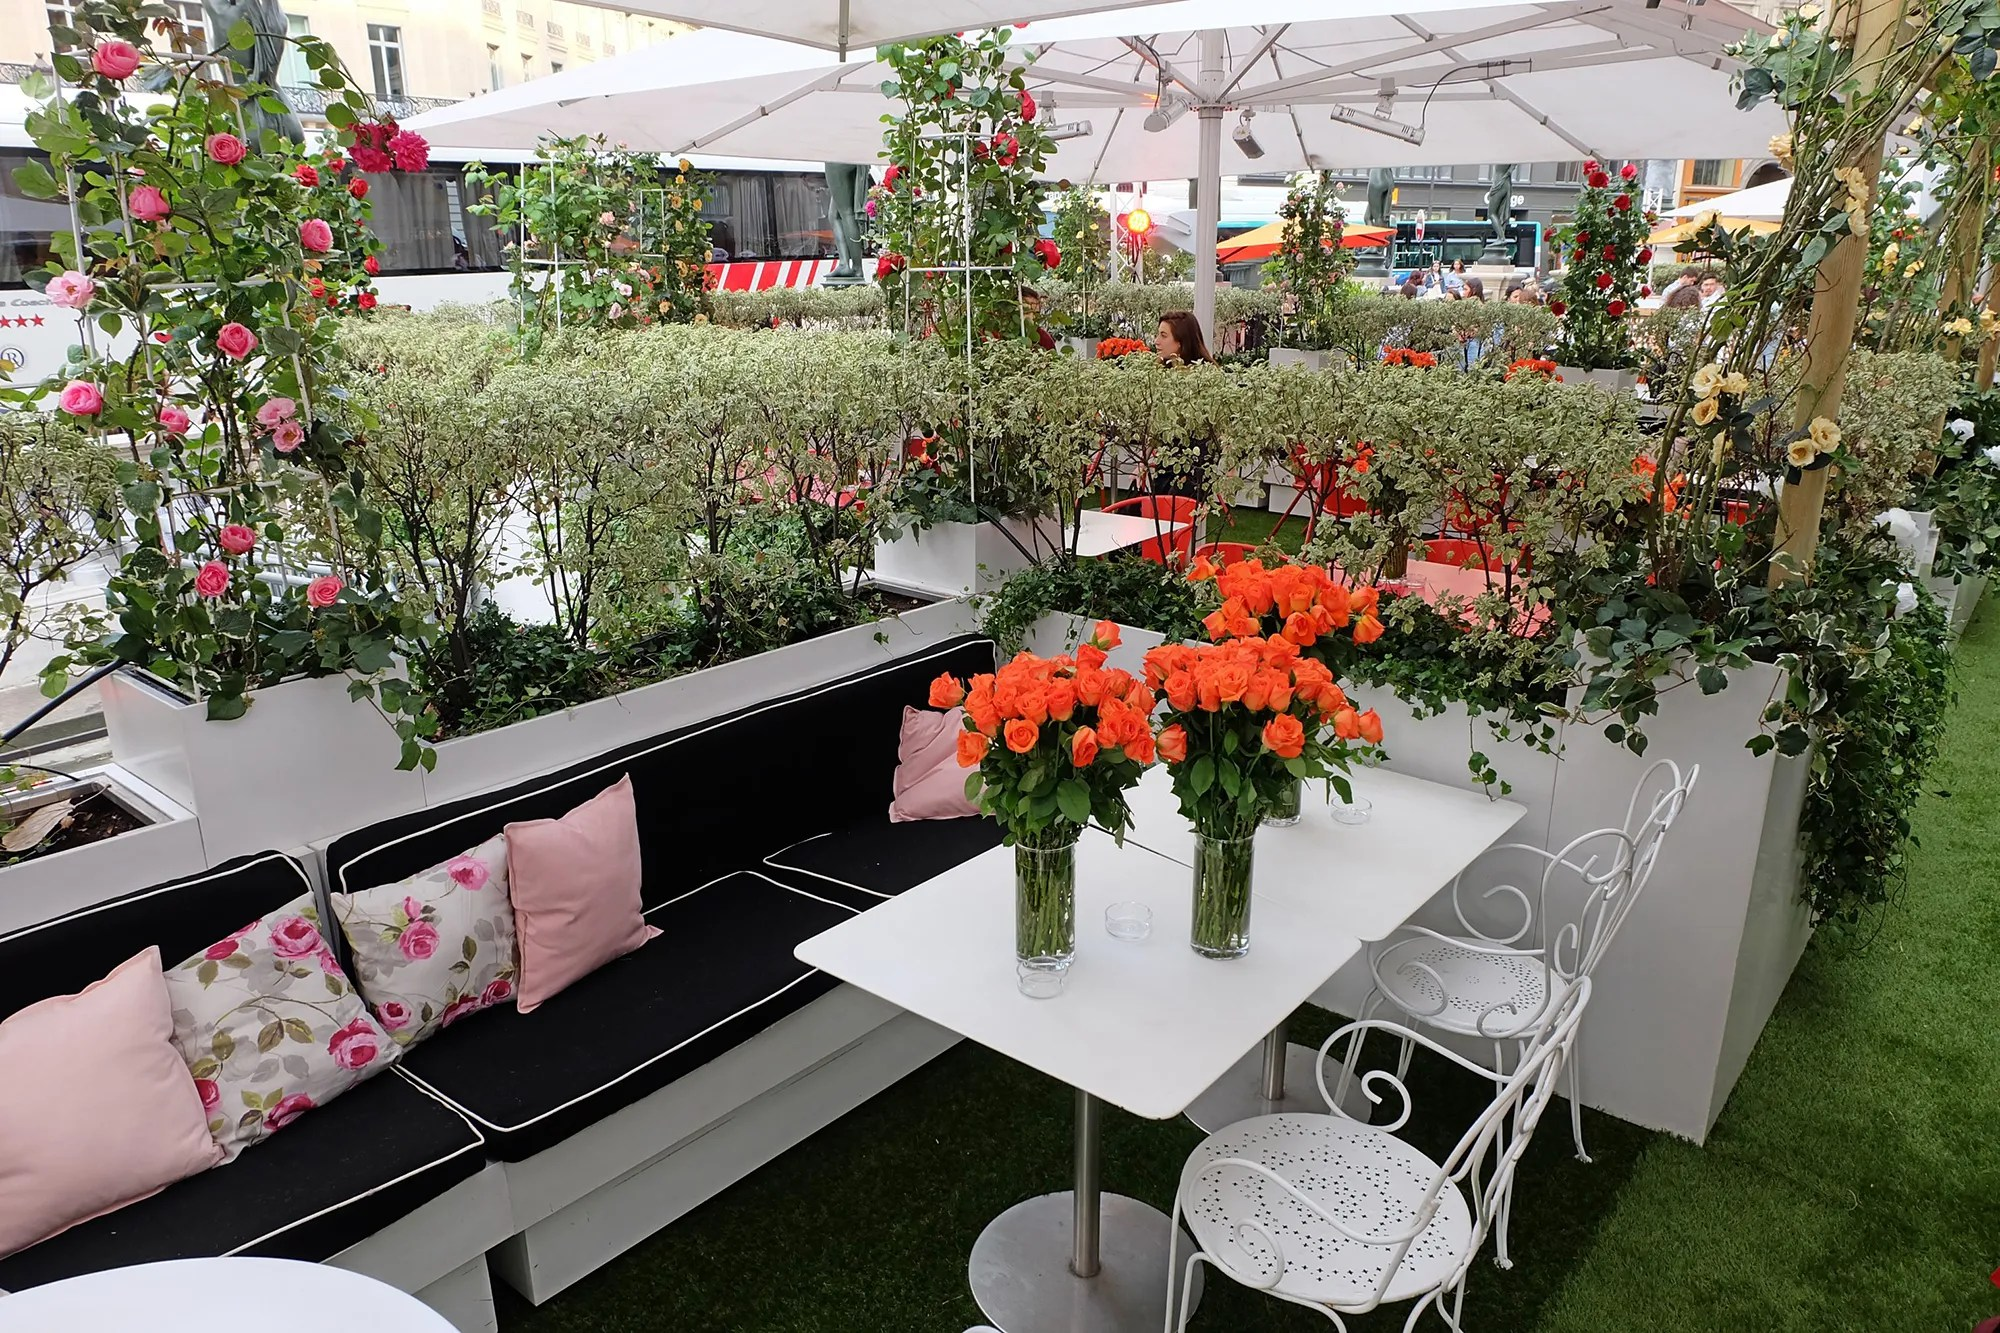 Best Of Terrasse Paris The Best New Places For An Outdoor Apéritif In Paris Vogue